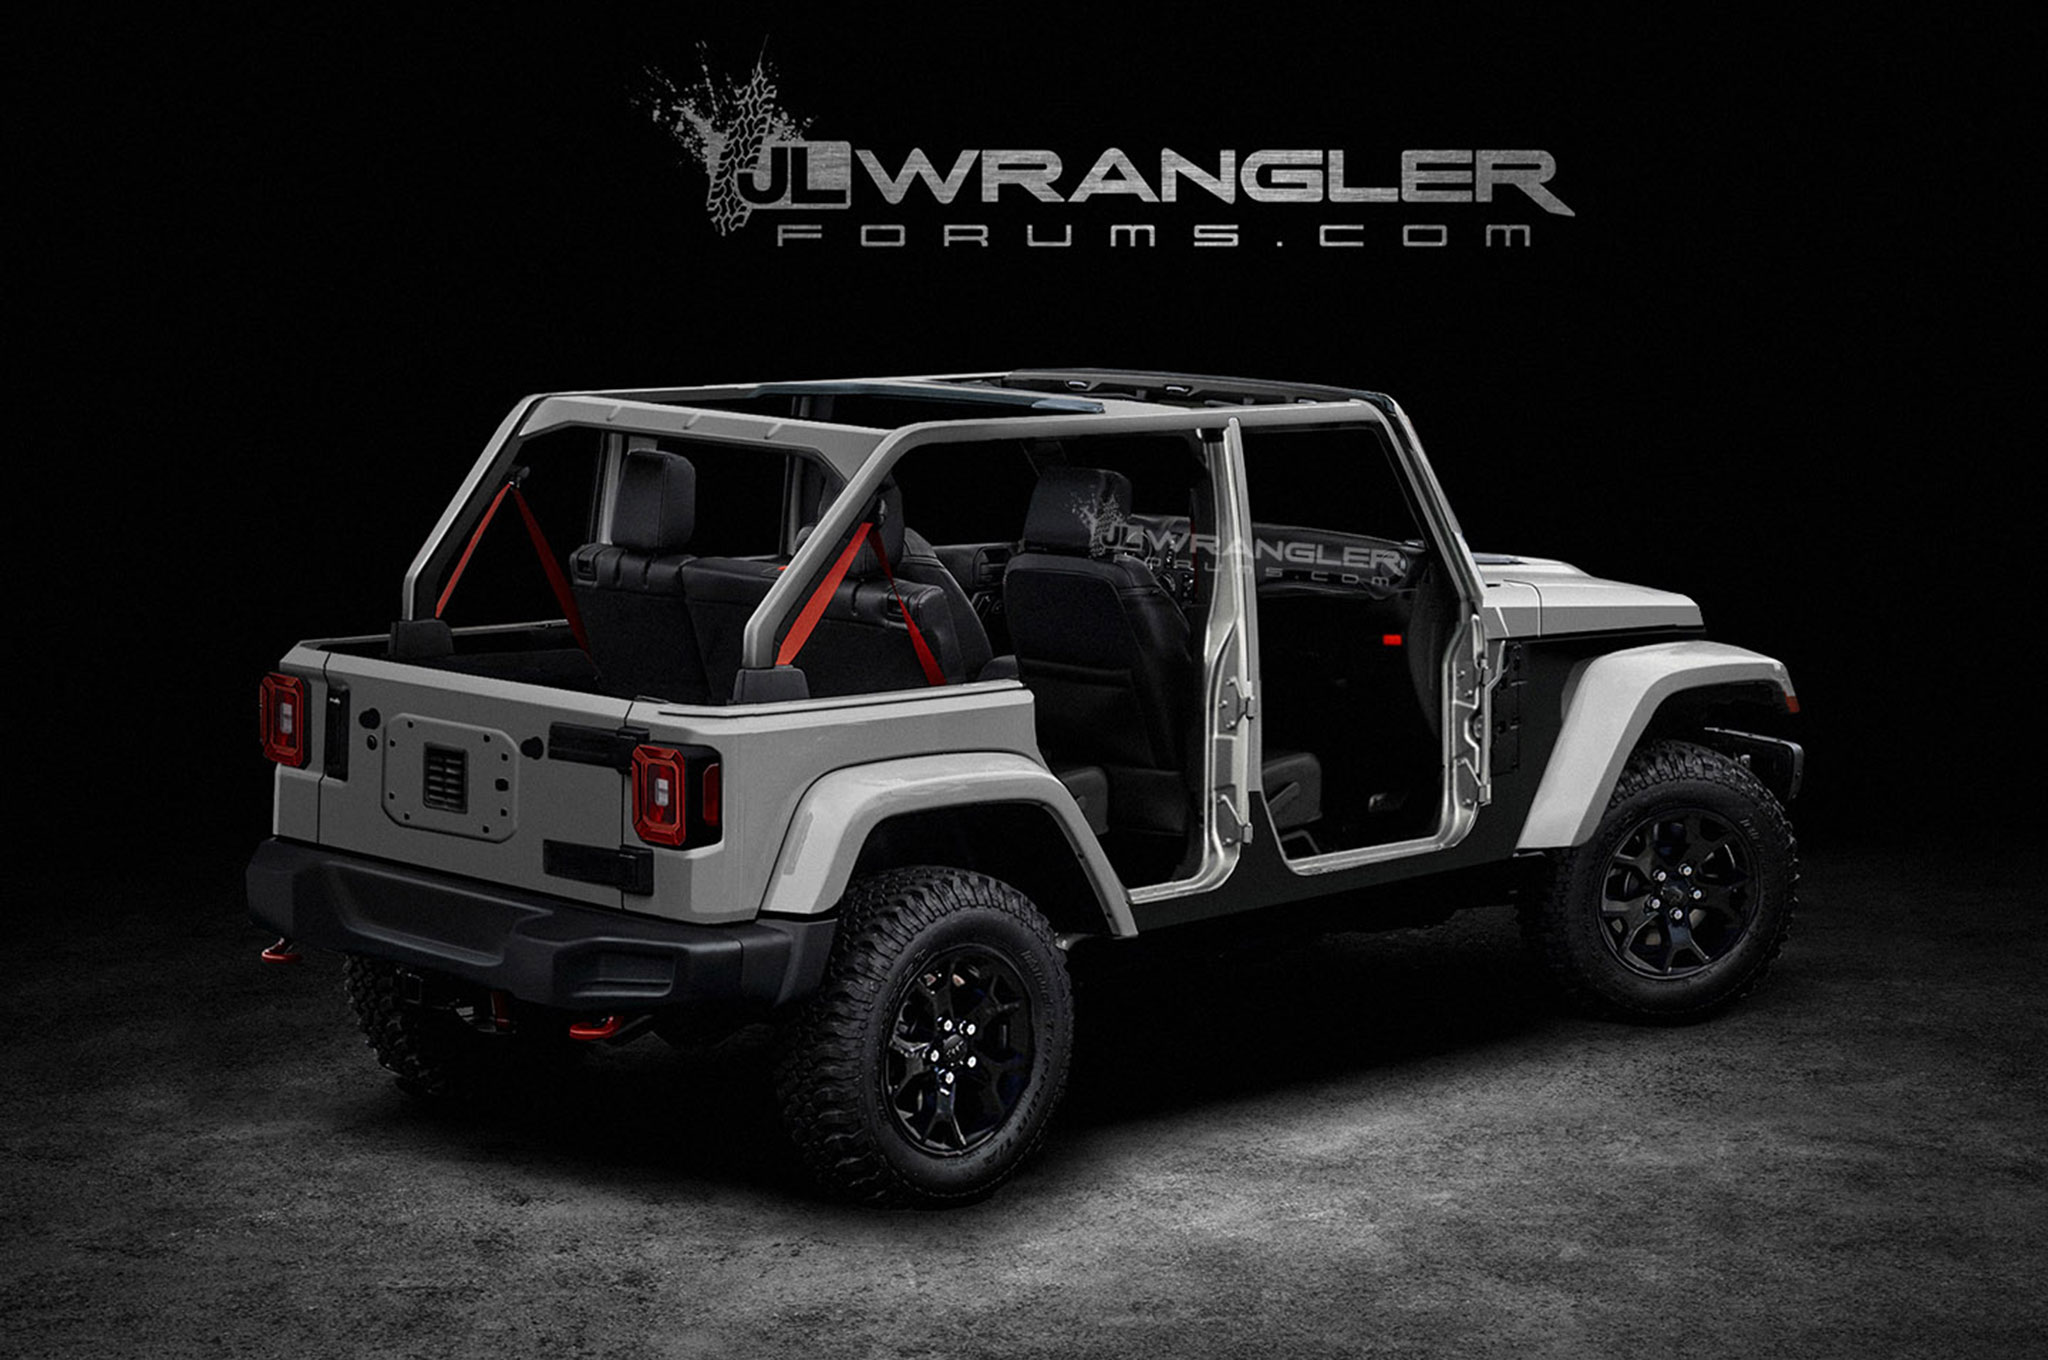 Unofficial Renderings of the Jeep Wrangler Unlimited ...